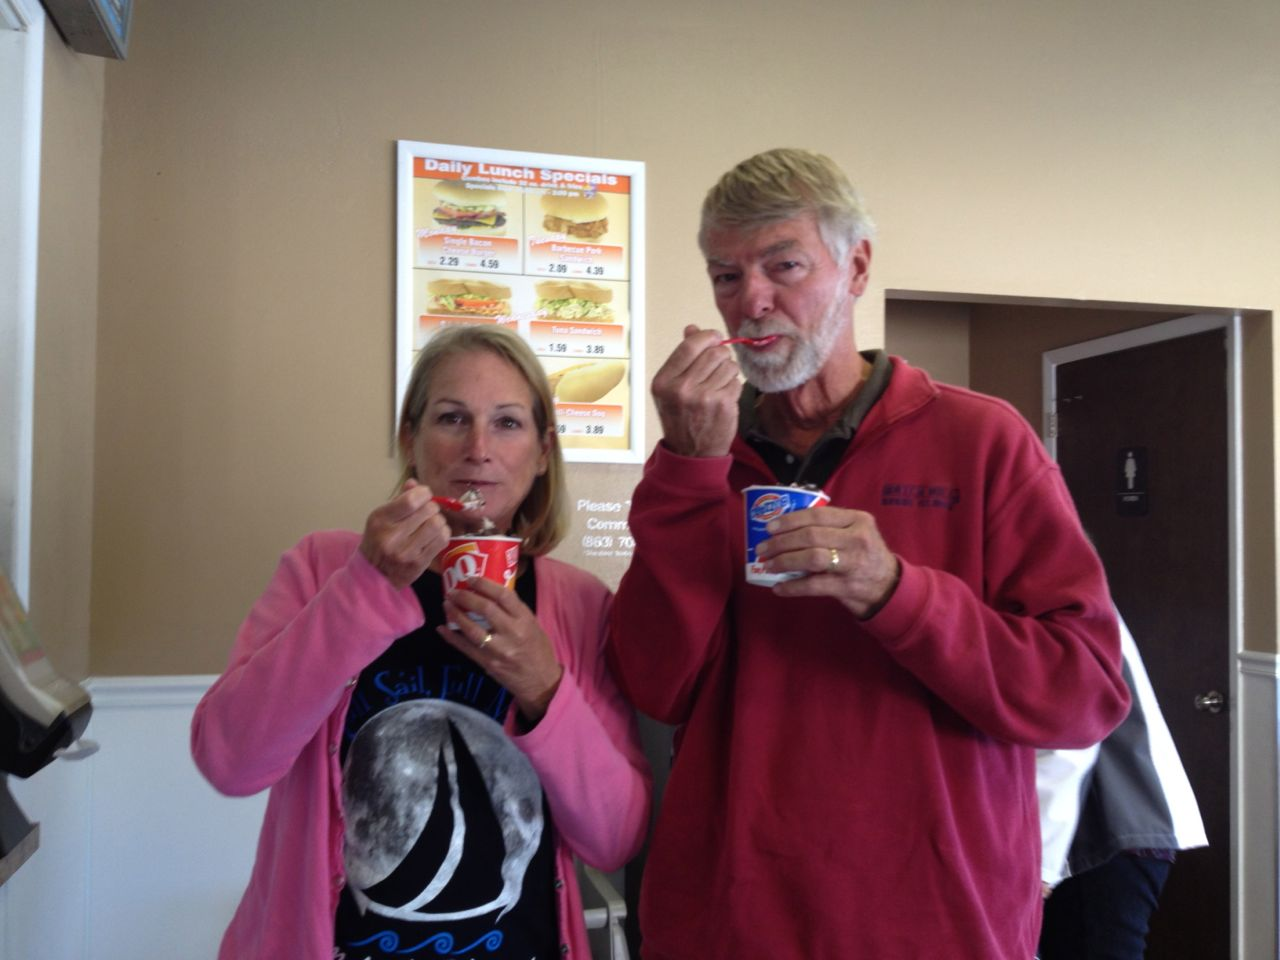 Our first Dairy Queen Blizzards in over 6 months!!